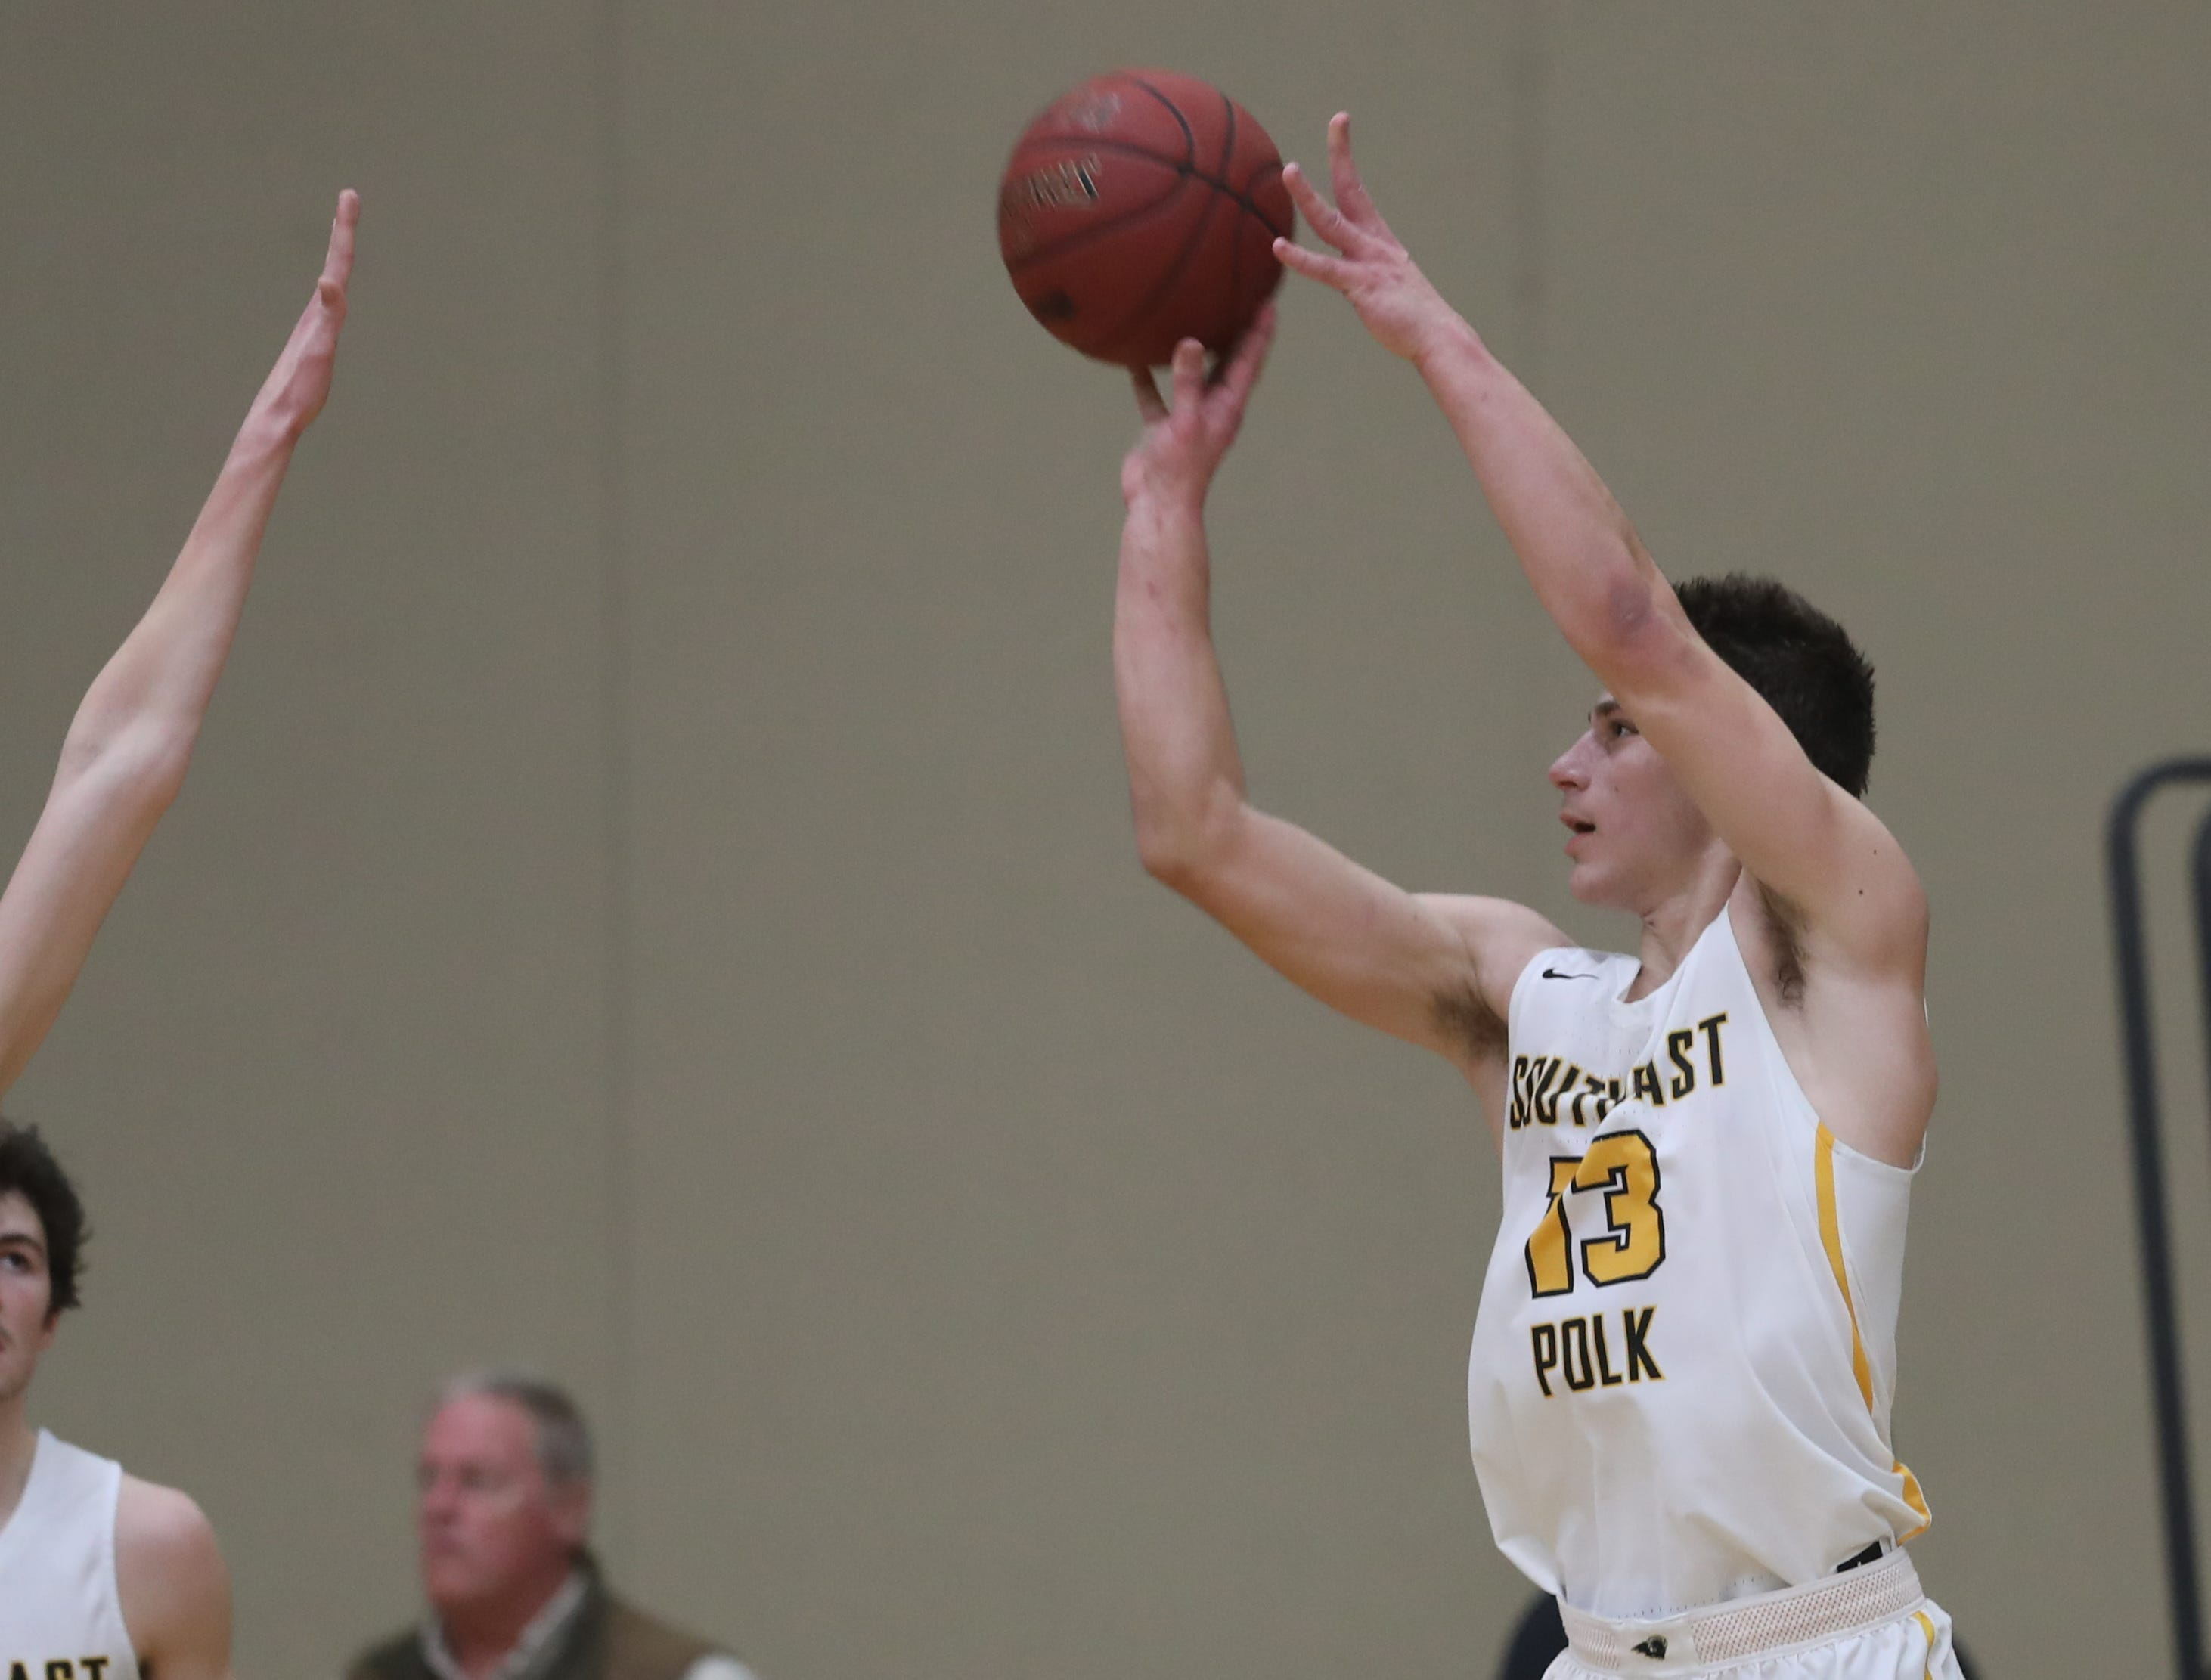 Southeast Polk Rams' Dominic Caggiano (13) shoots against the Waukee Warriors during a game on Feb. 1, 2019 at Southeast Polk High School.